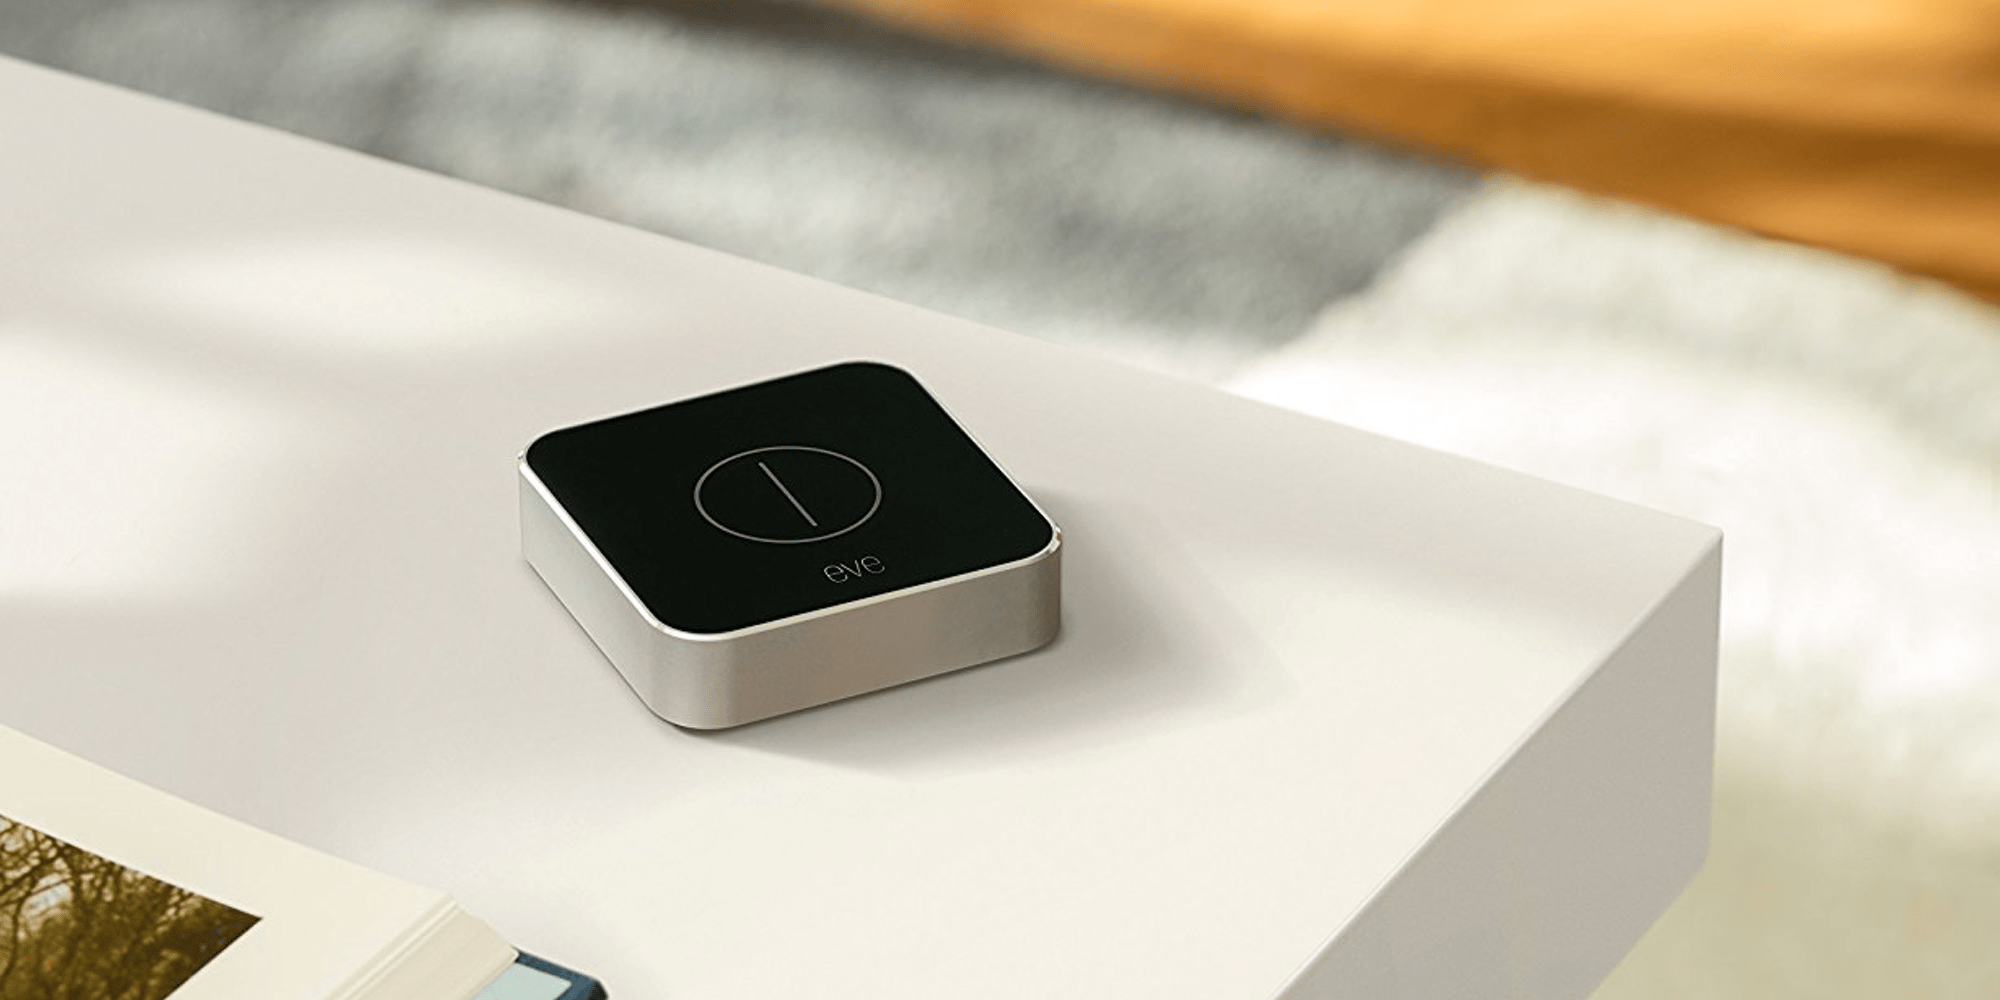 Eve Button delivers HomeKit control at an all-time low: $25 (Reg. $40+)